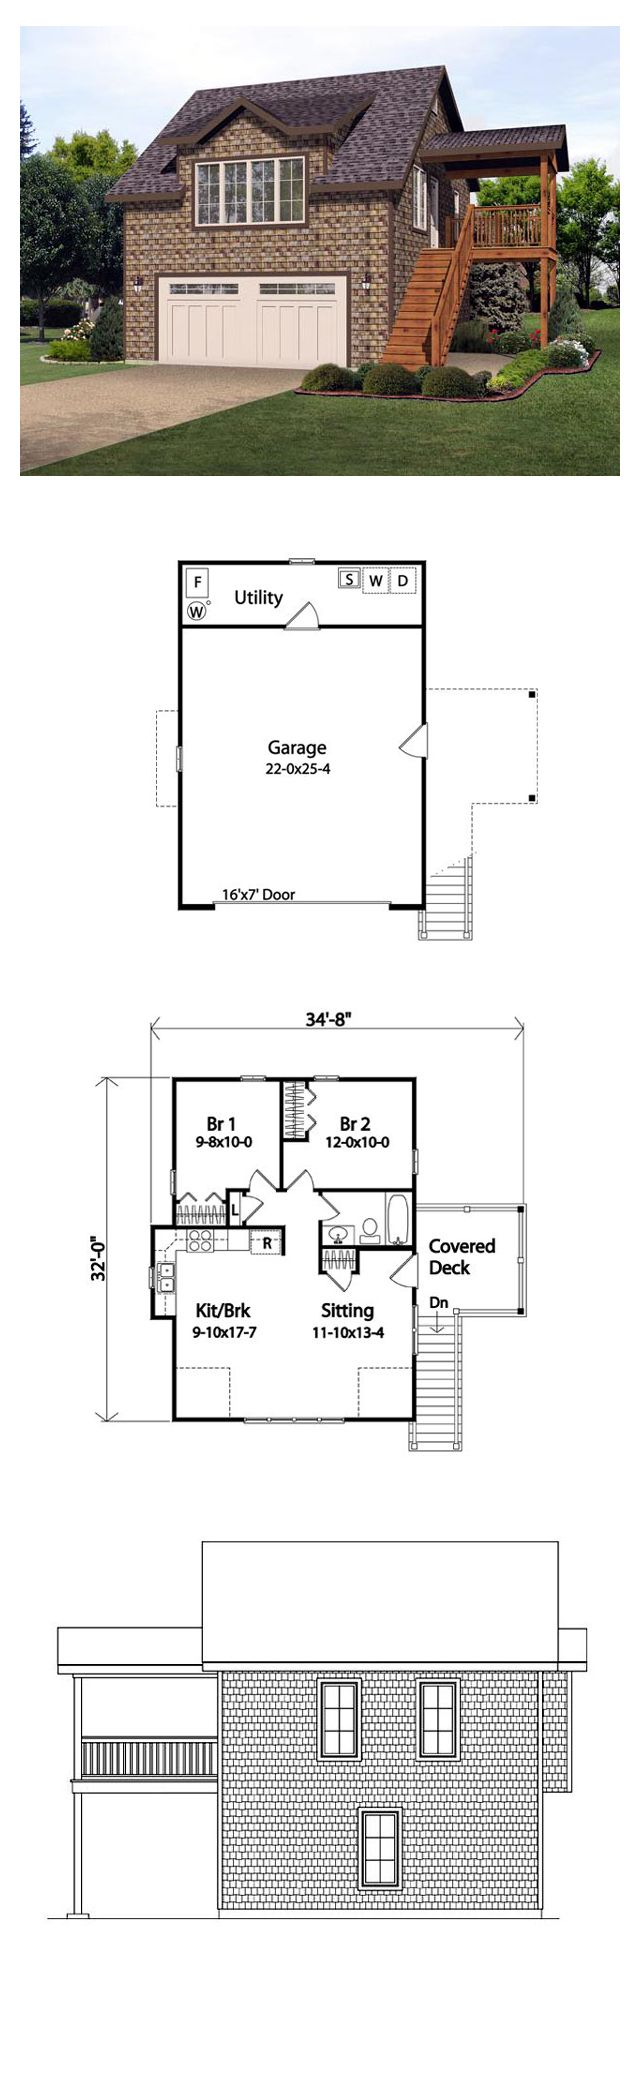 2 Car Garage Apartment Plan Number 45121 with 2 Bed, 1 Bath #garageplans